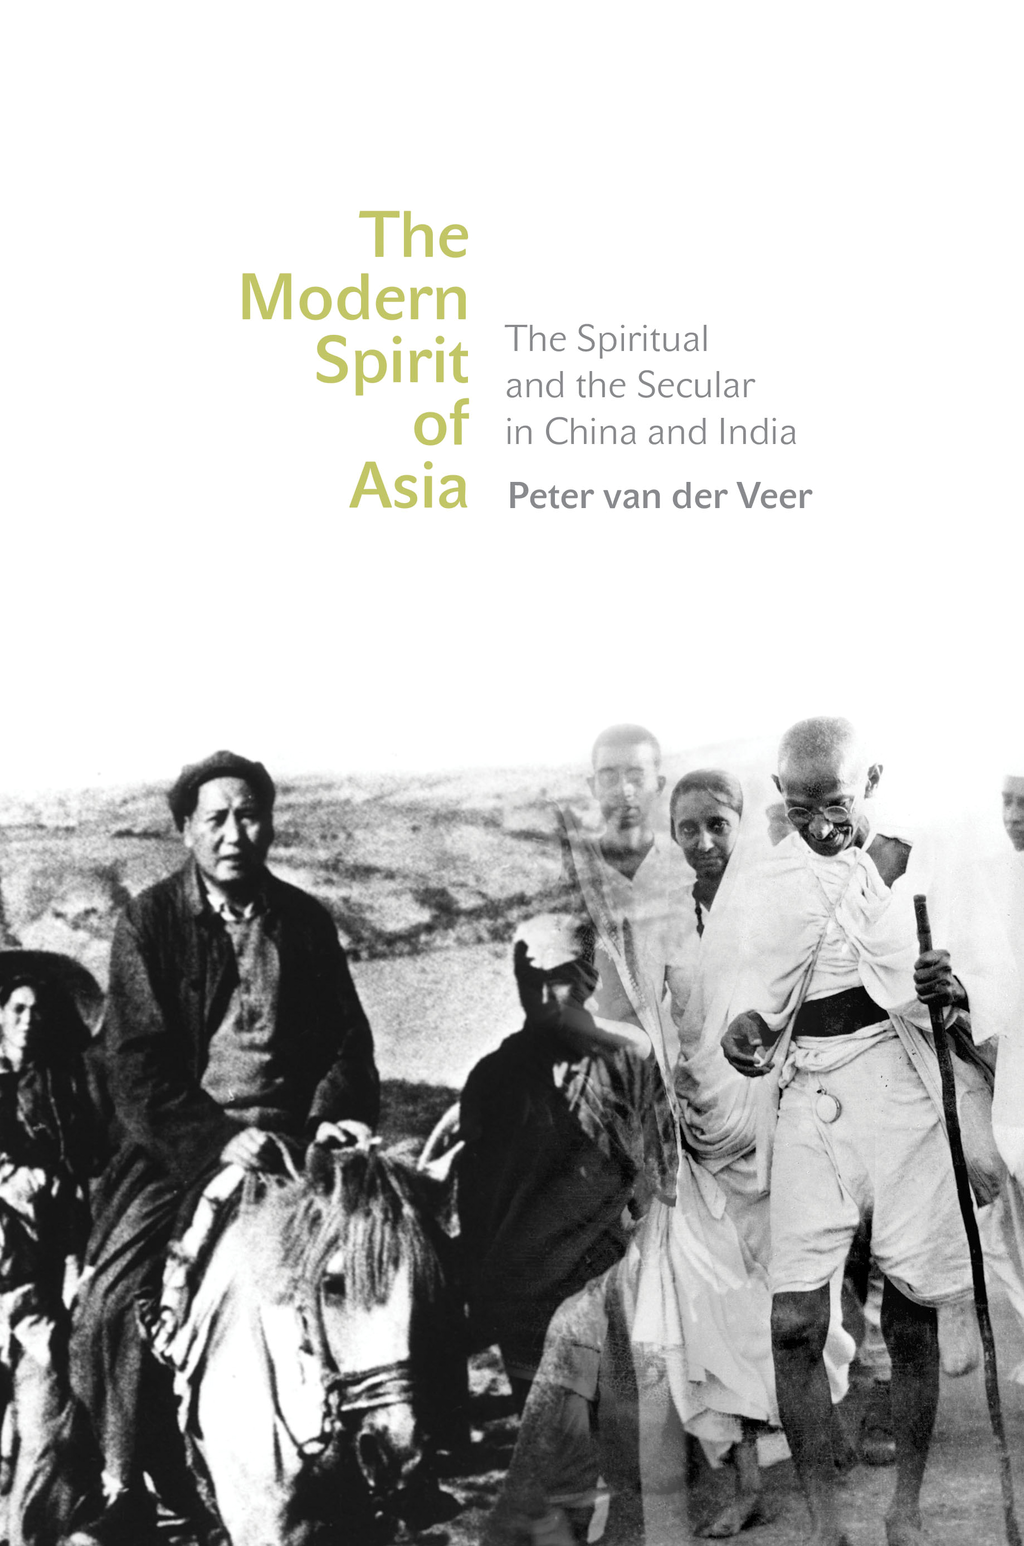 The Modern Spirit of Asia The Spiritual and the Secular in China and India